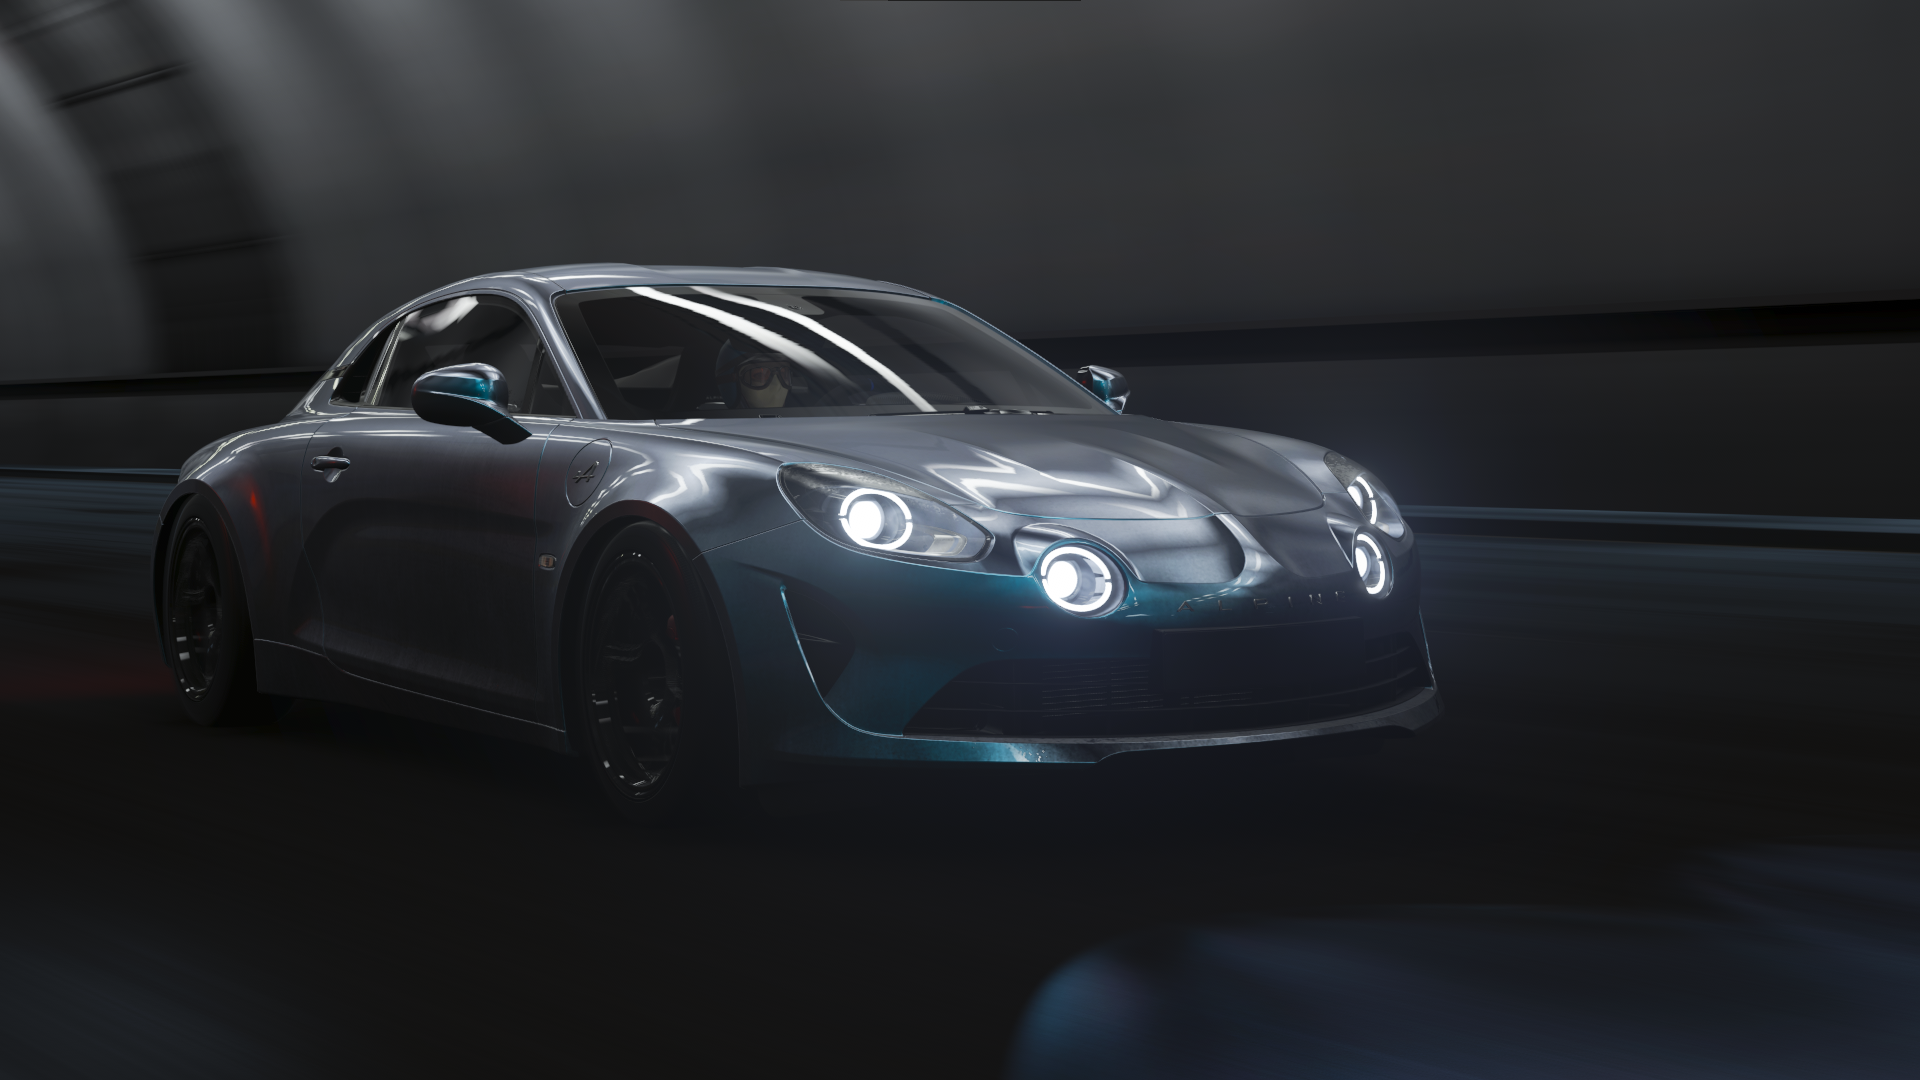 General 1920x1080 Forza Horizon 4 Forza car Renault Alpine